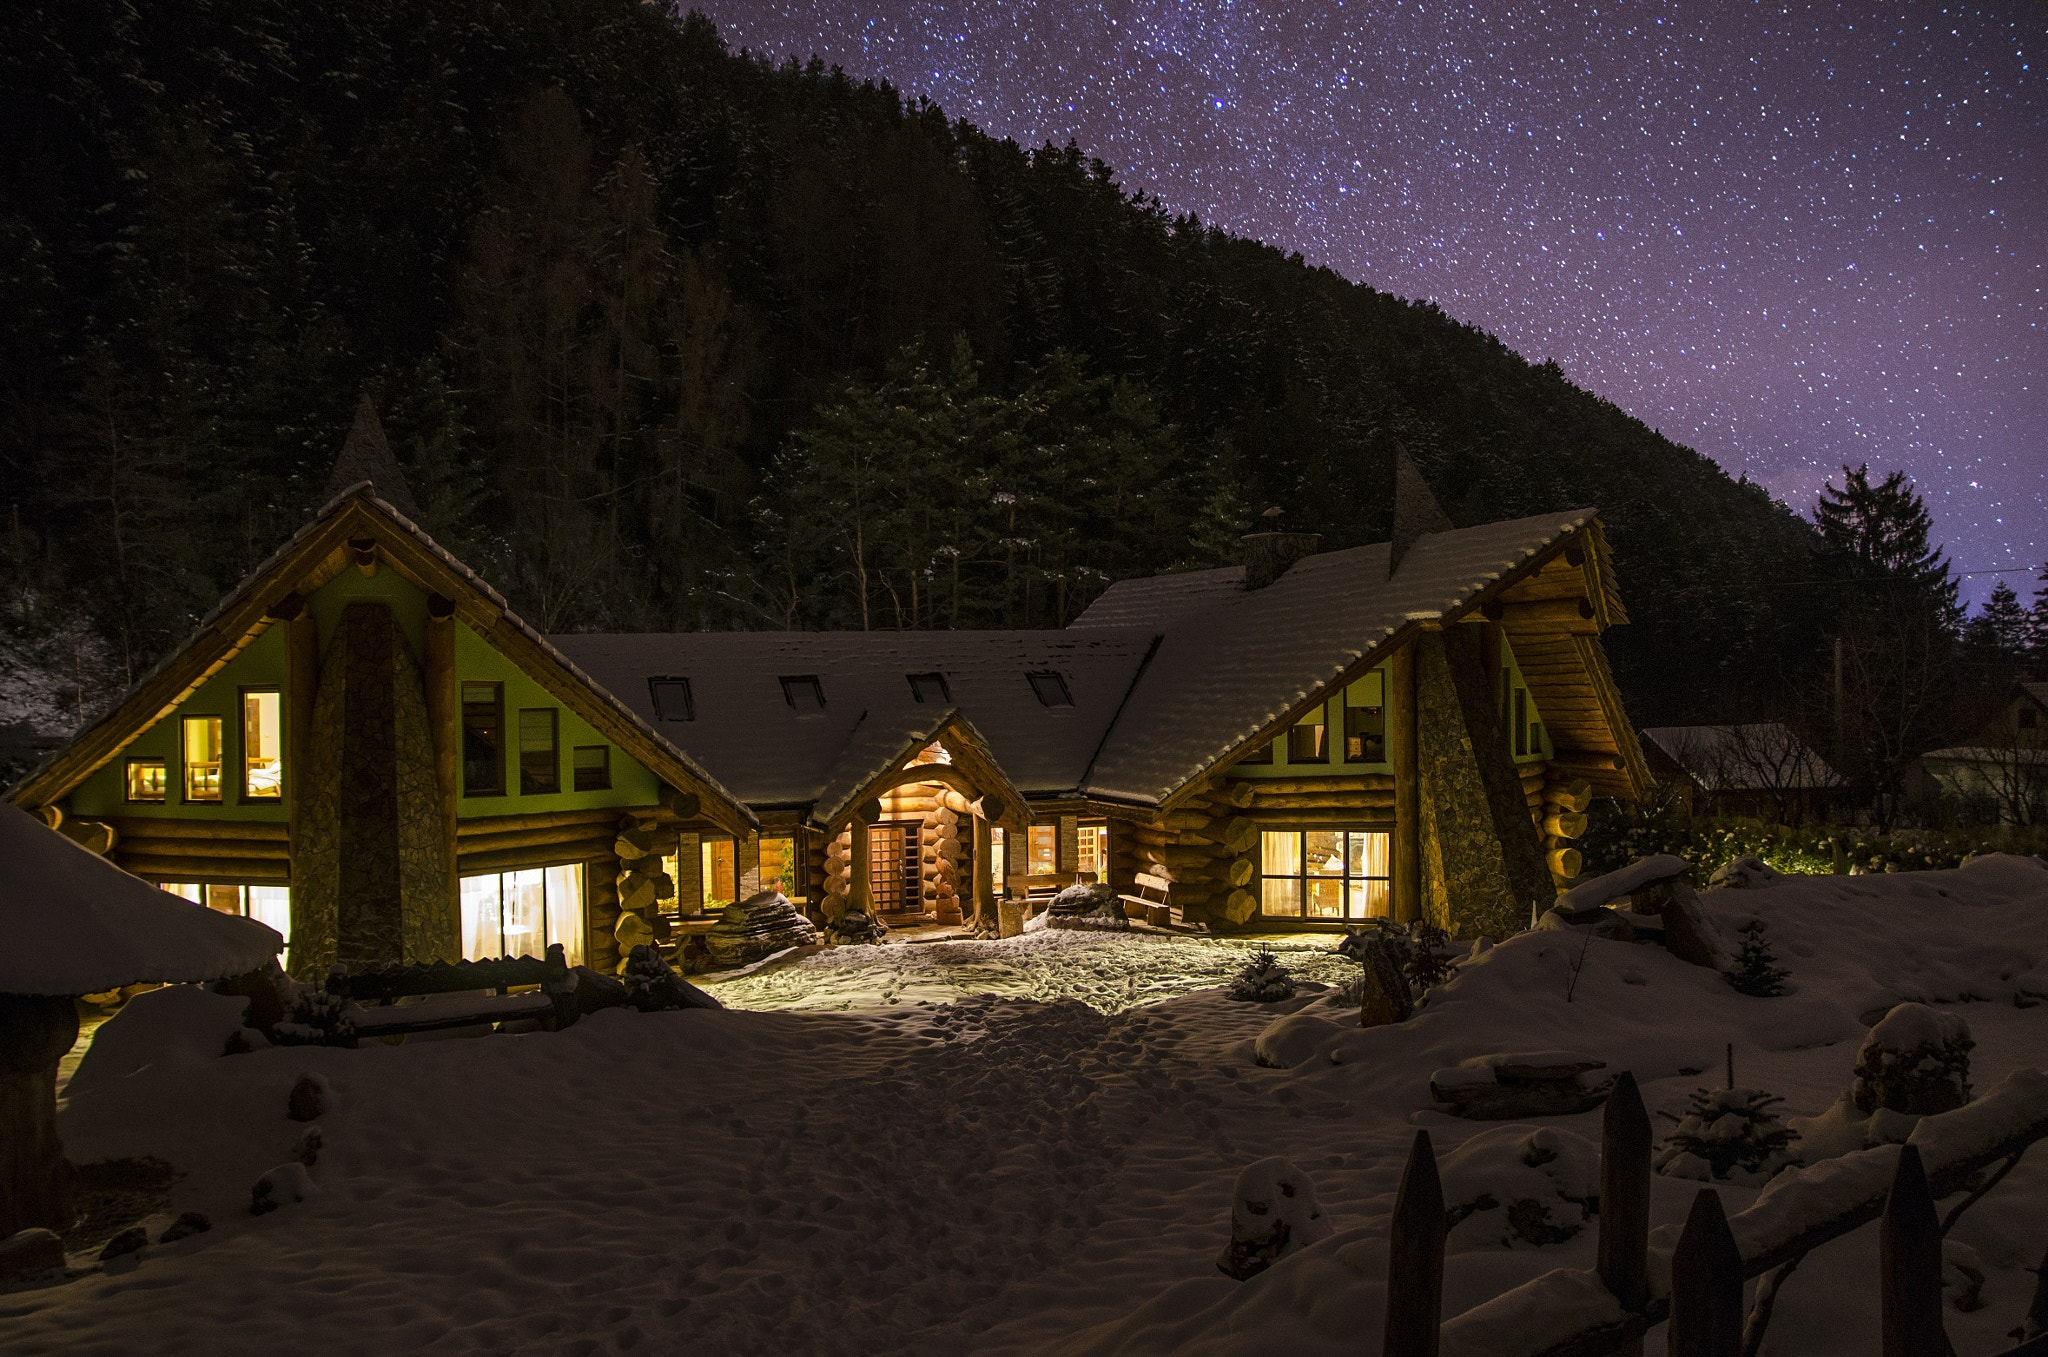 Photograph Silent Night by David Bugyi on 500px